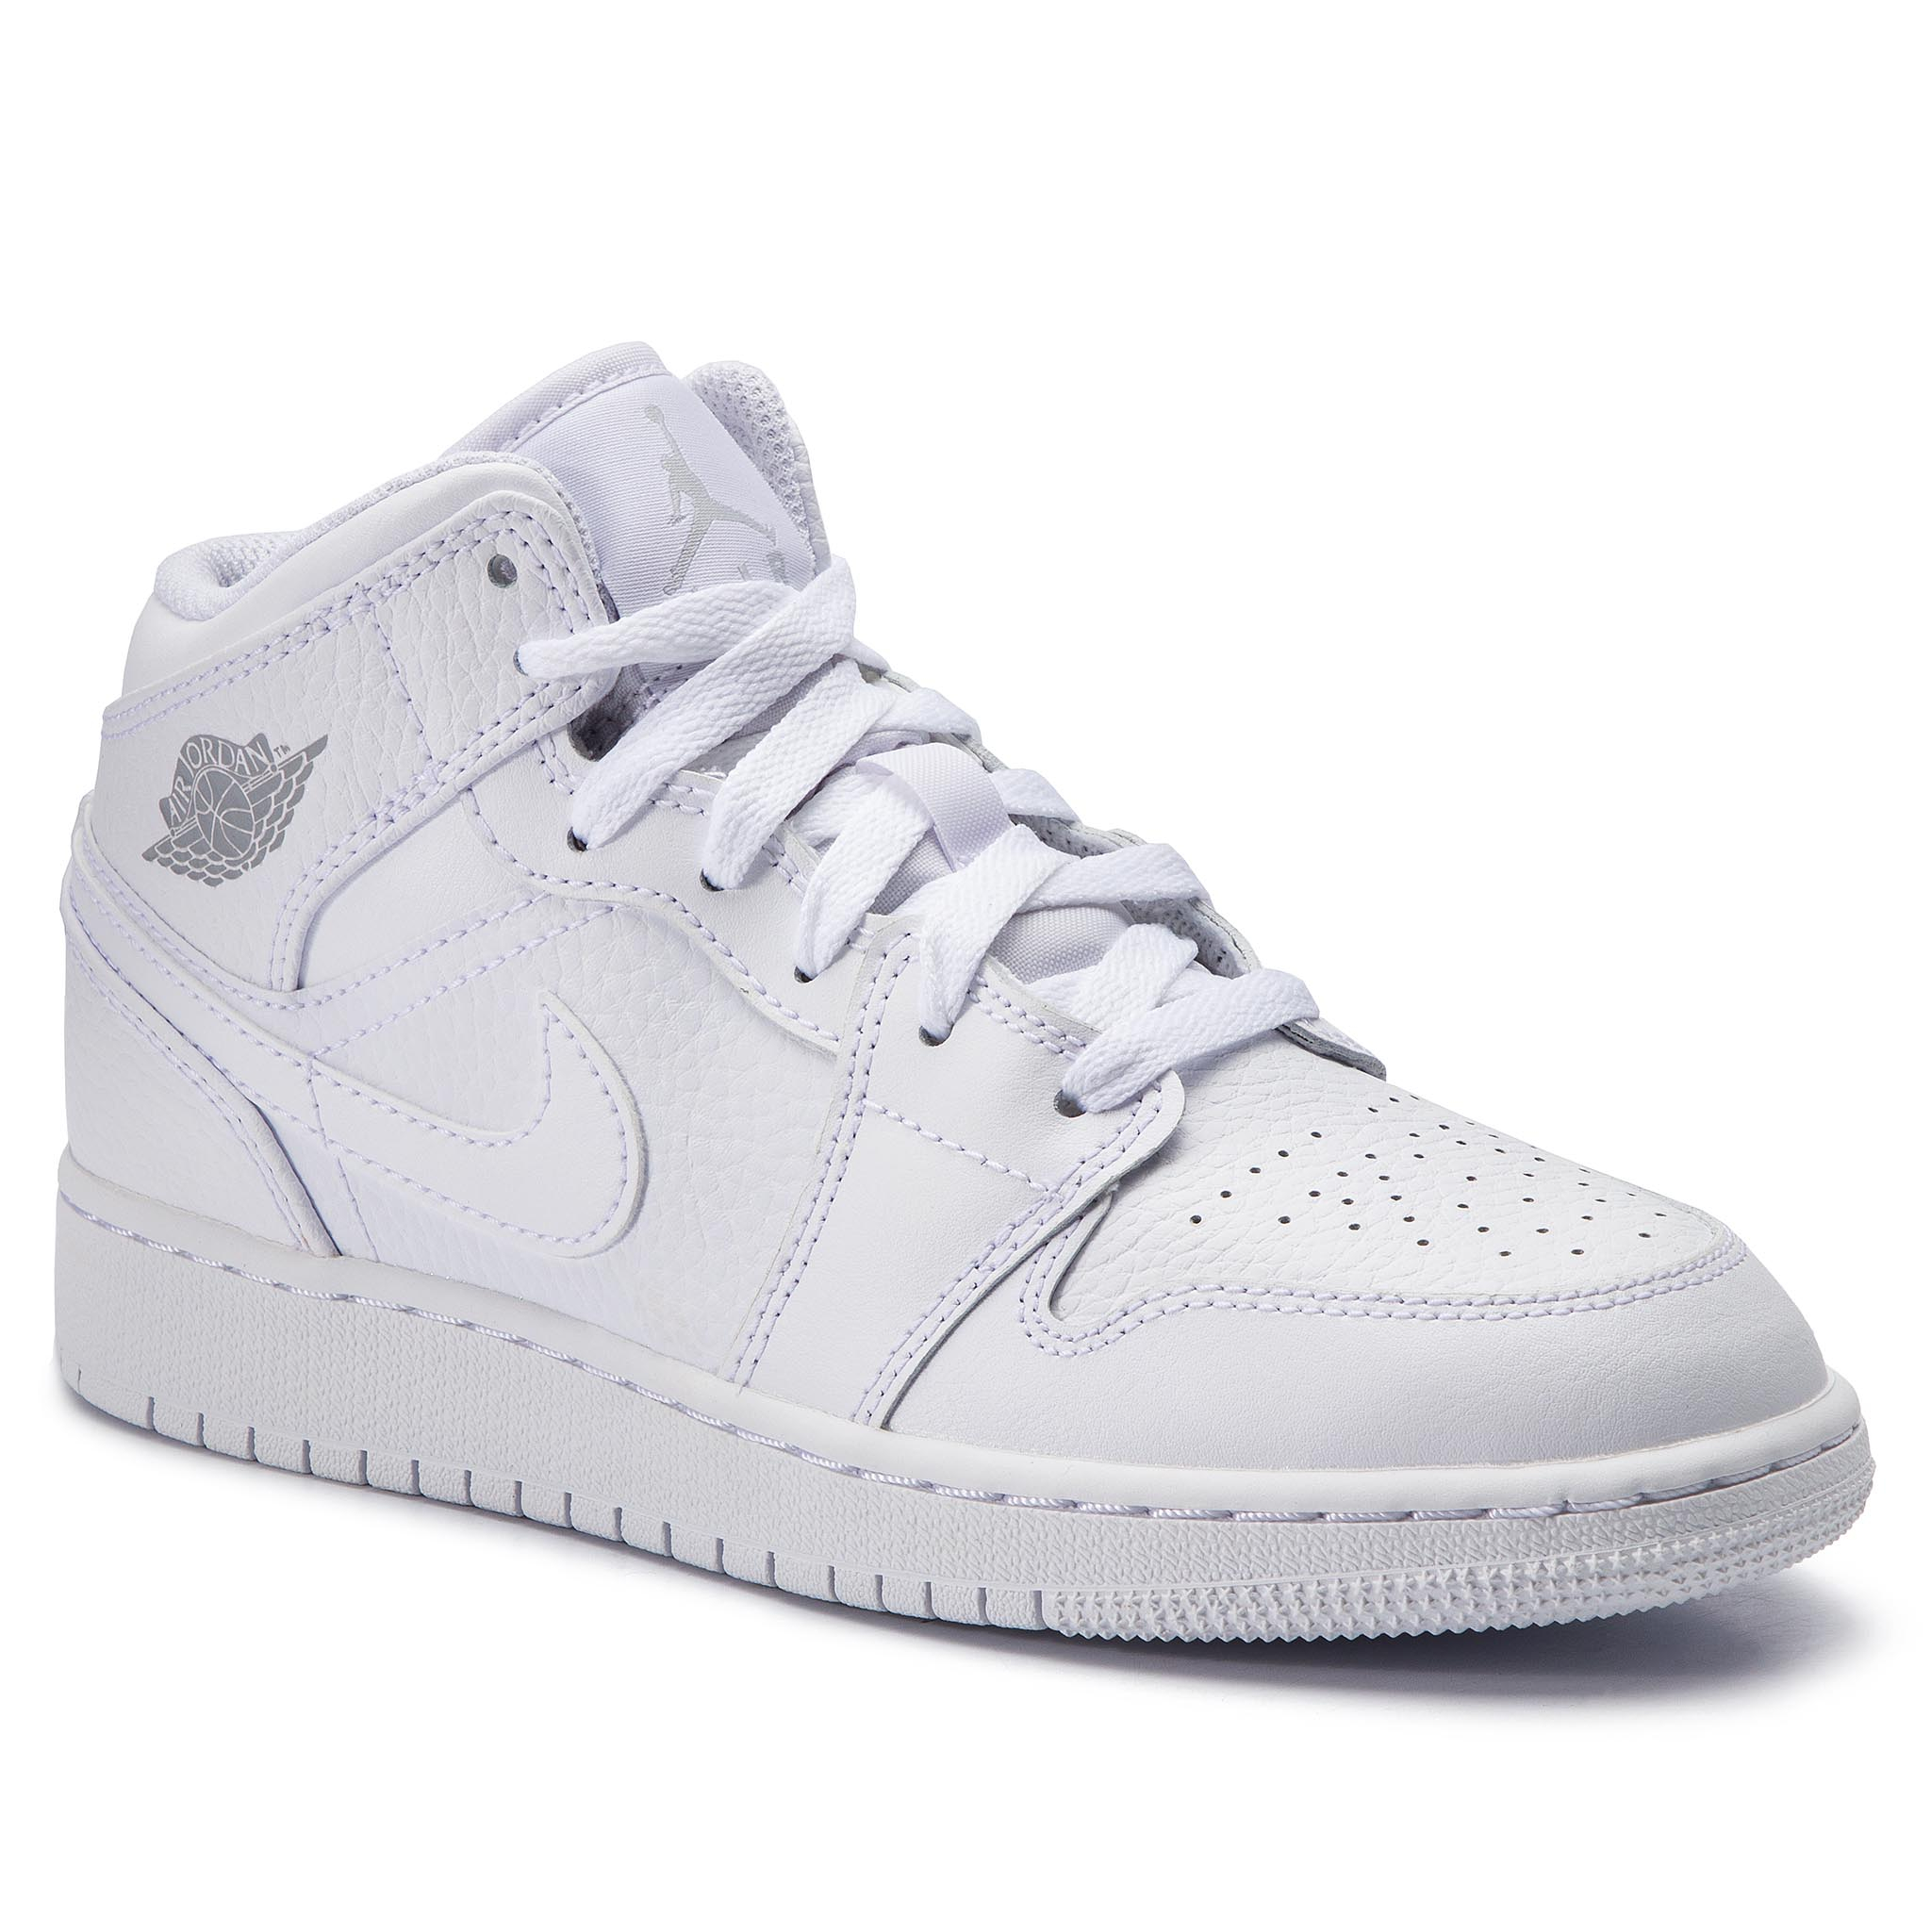 another chance 8be82 02025 Shoes NIKE Air Jordan 1 Mid (GS) 554725 109 White PurePlatinum White